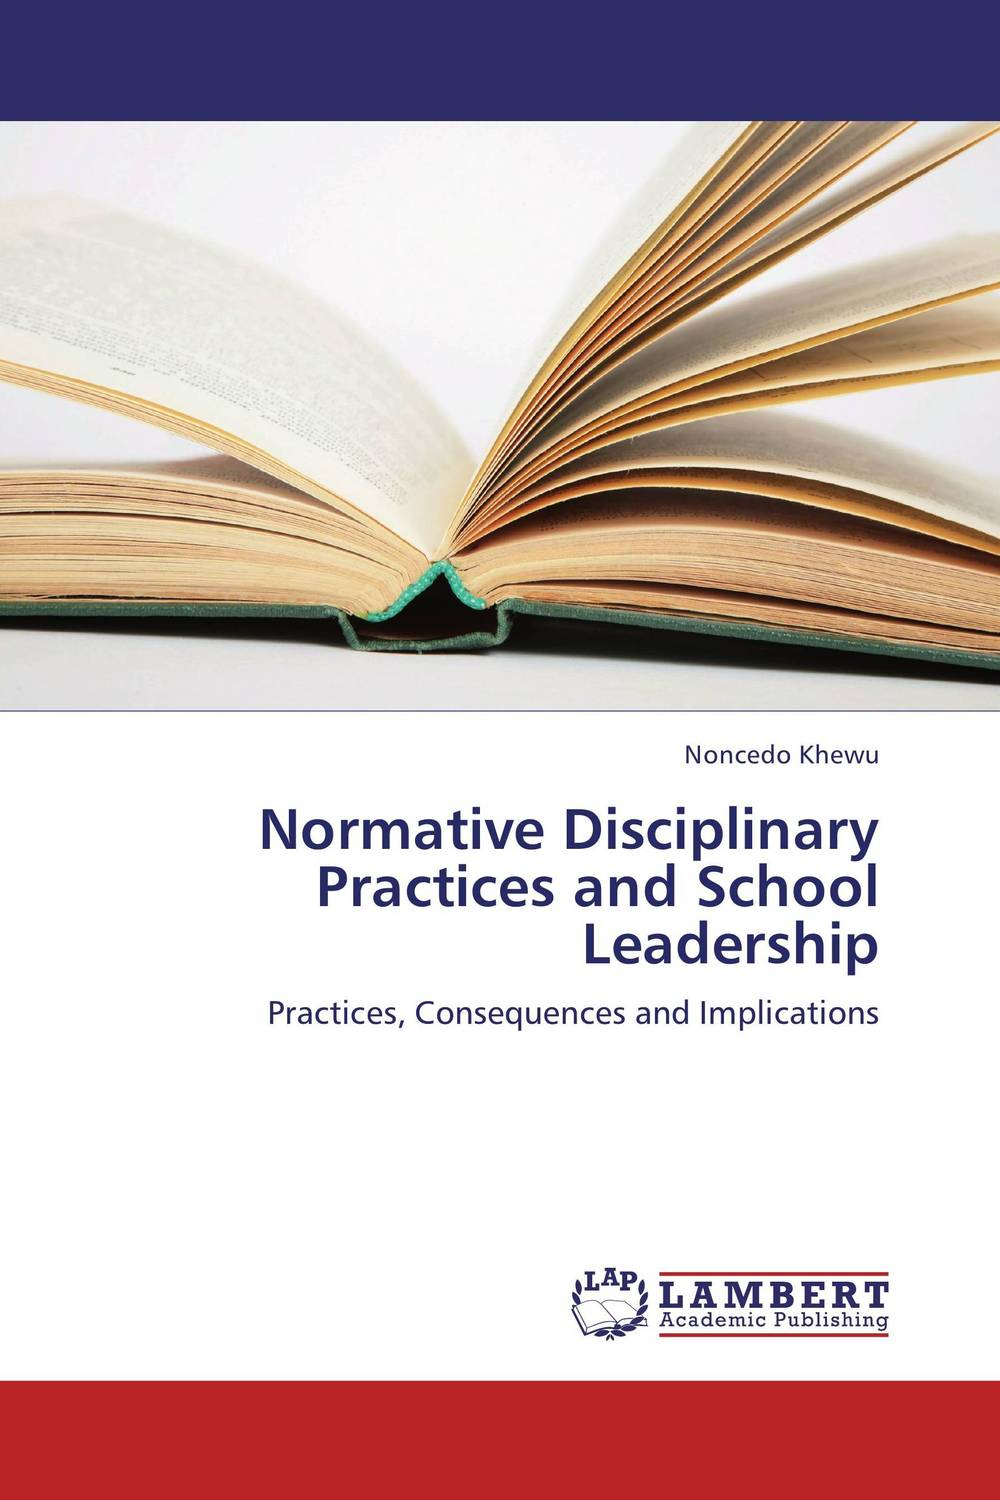 Normative Disciplinary Practices and School Leadership role of school leadership in promoting moral integrity among students